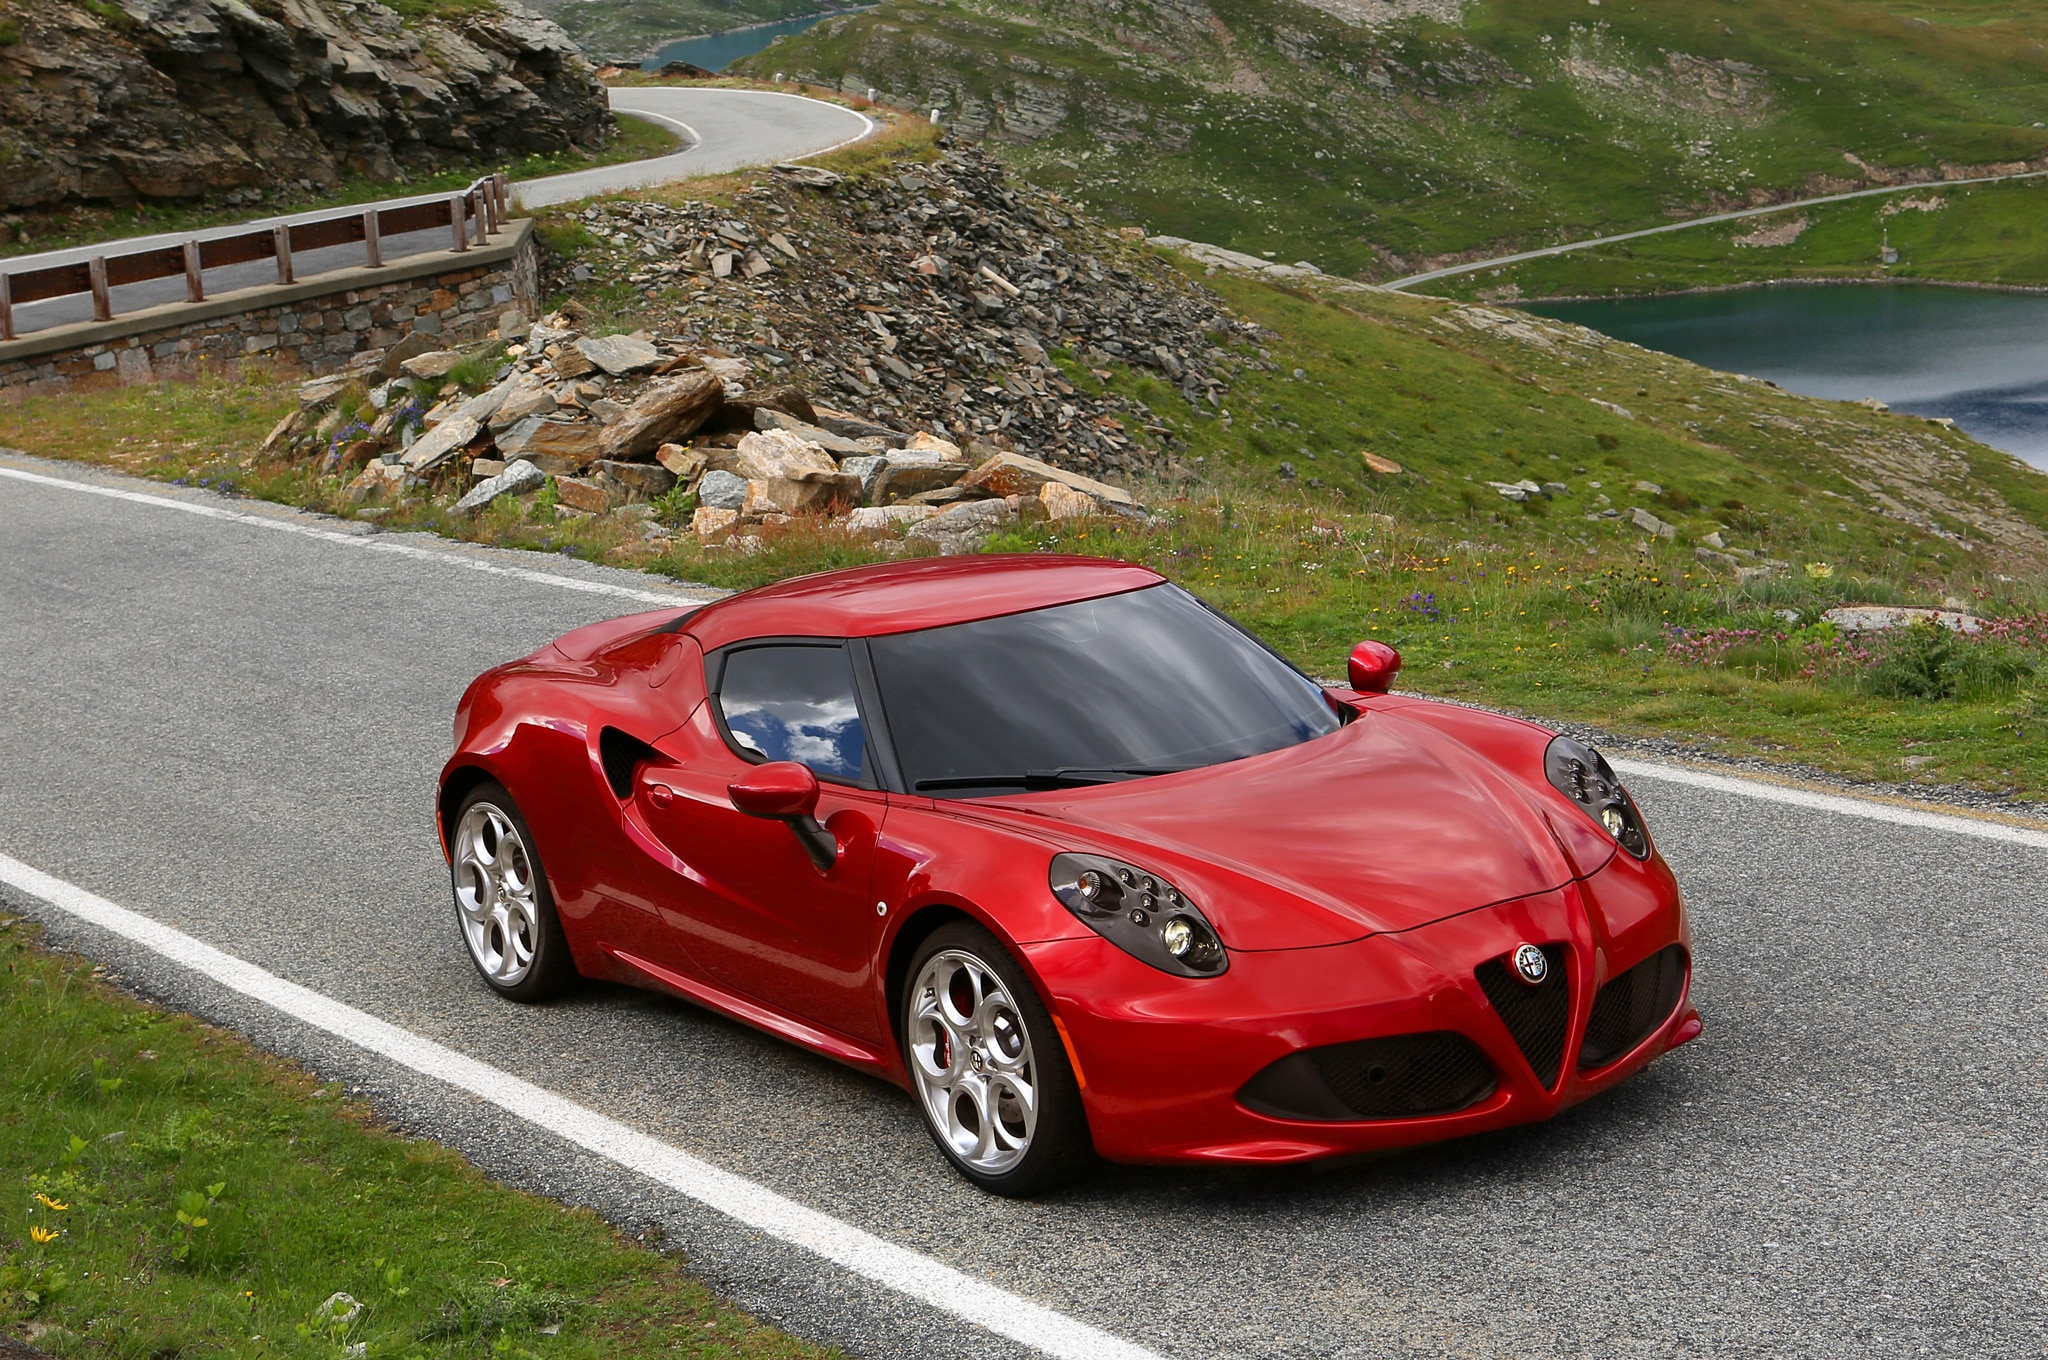 2014 Alfa Romeo 4c From Above1